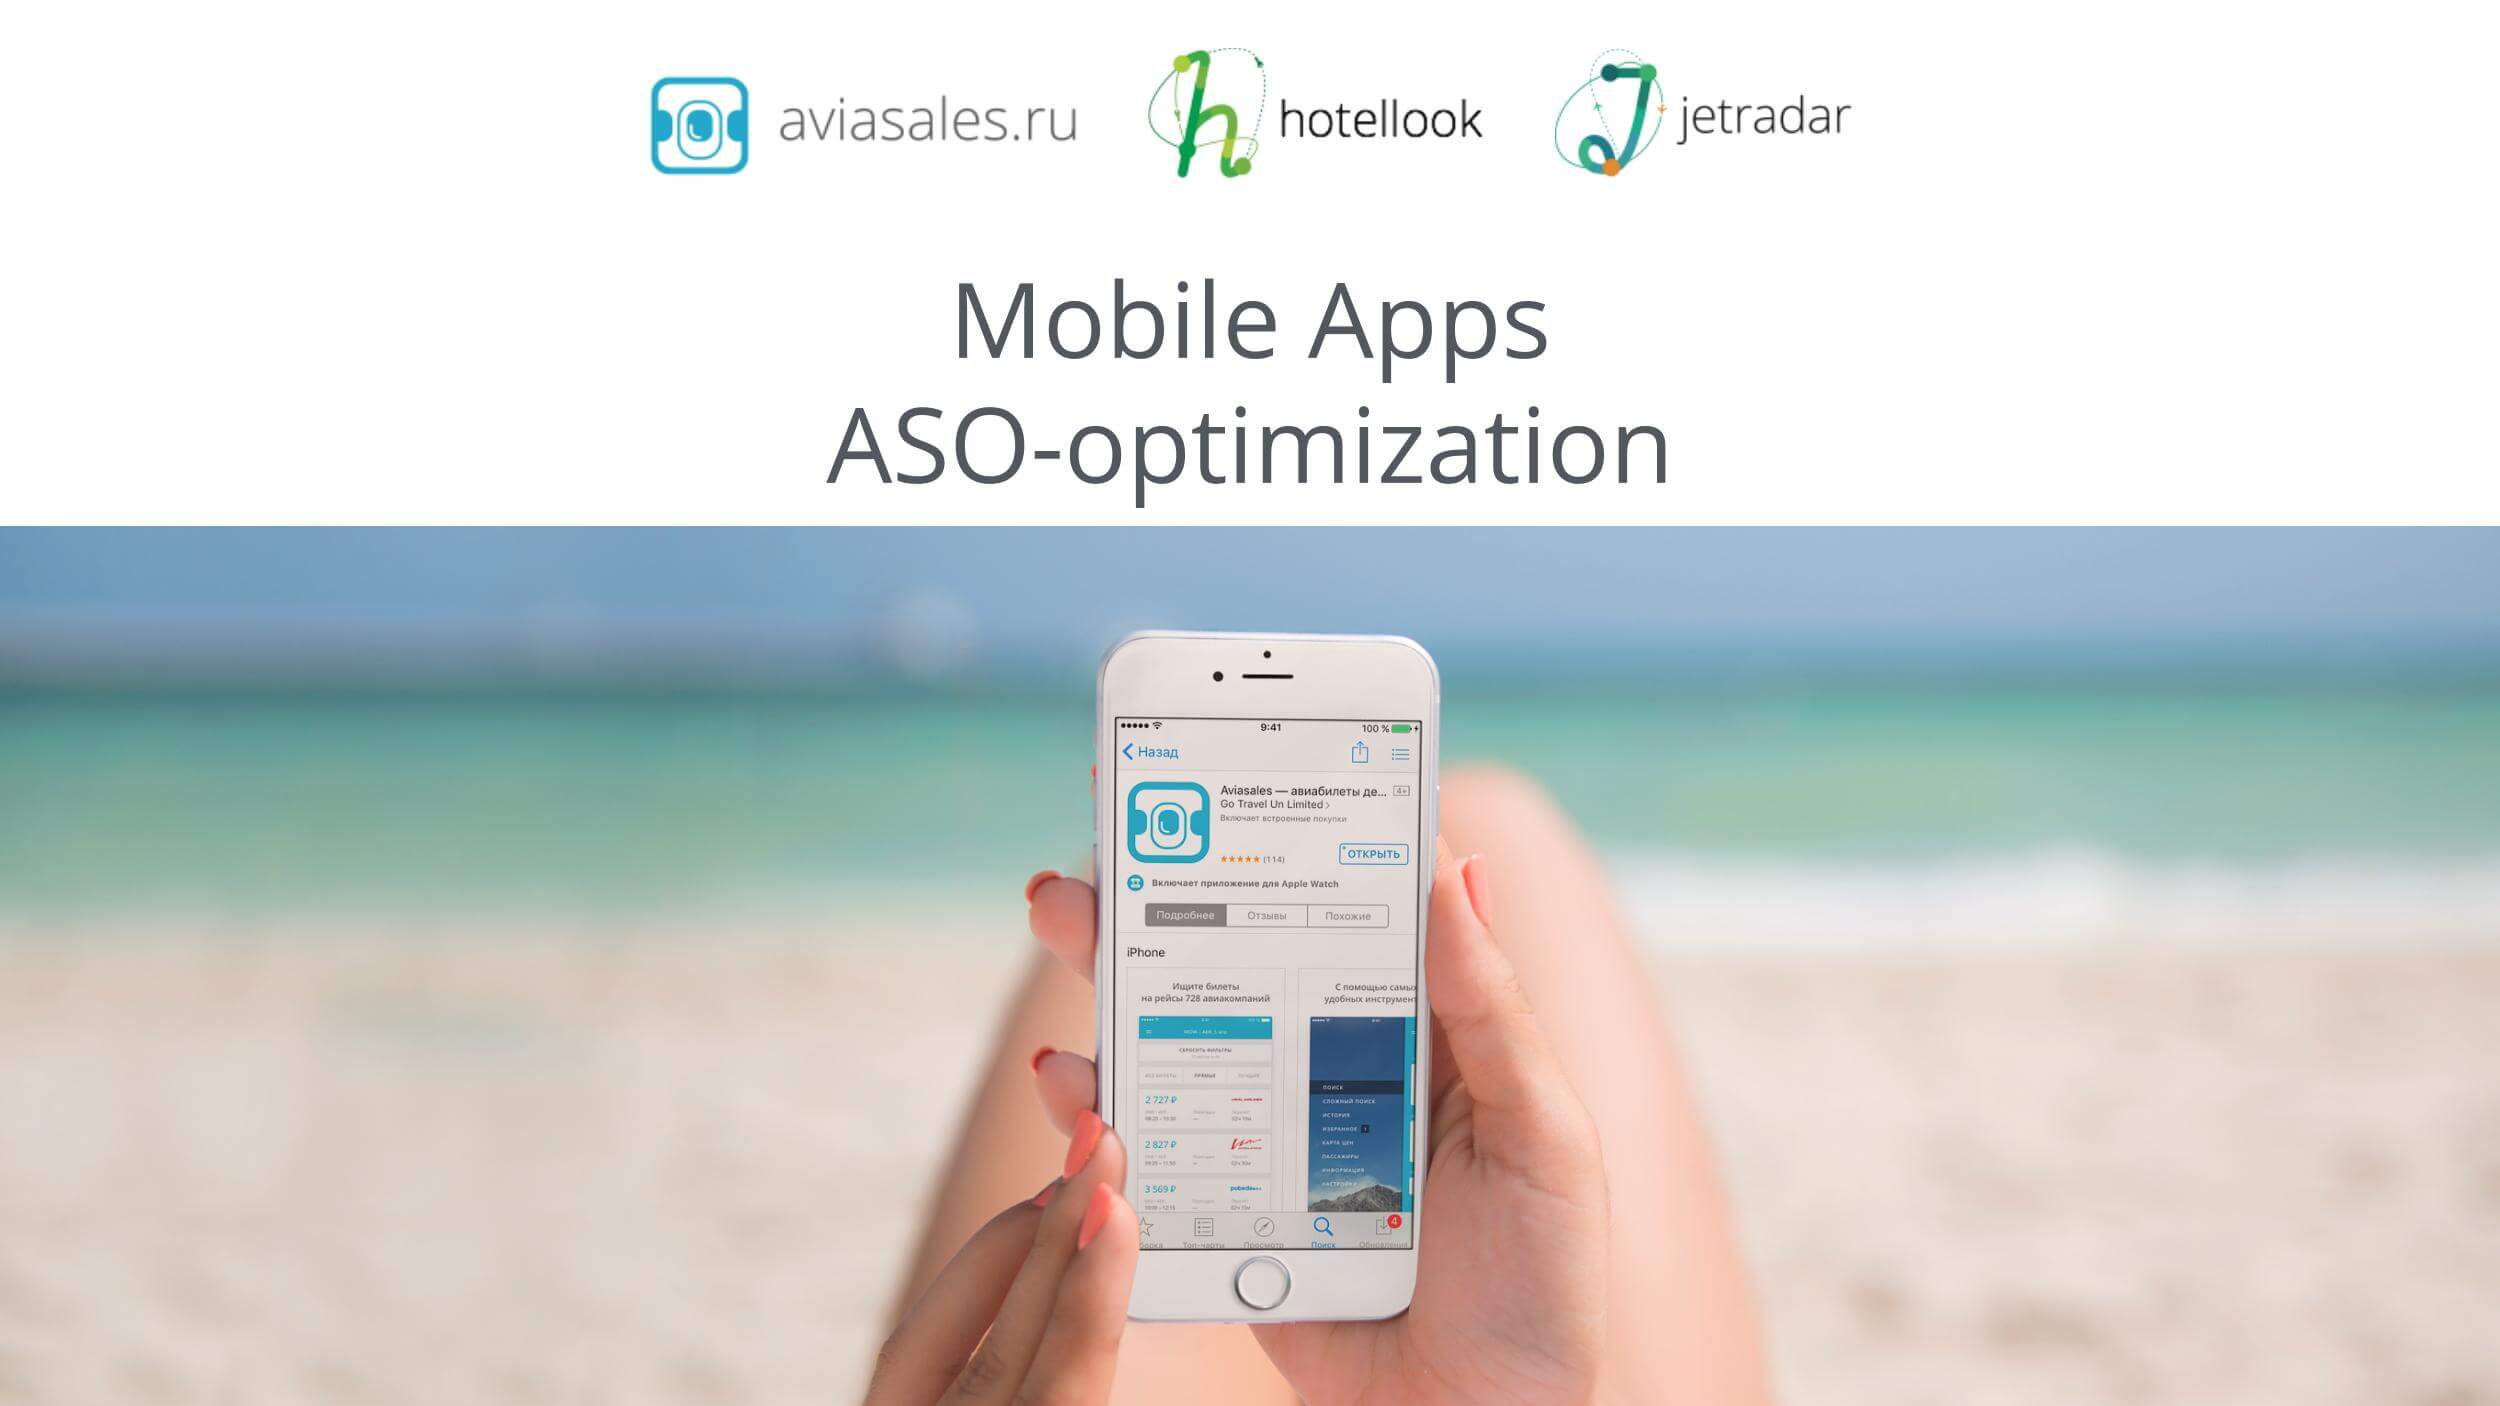 aso-optimization